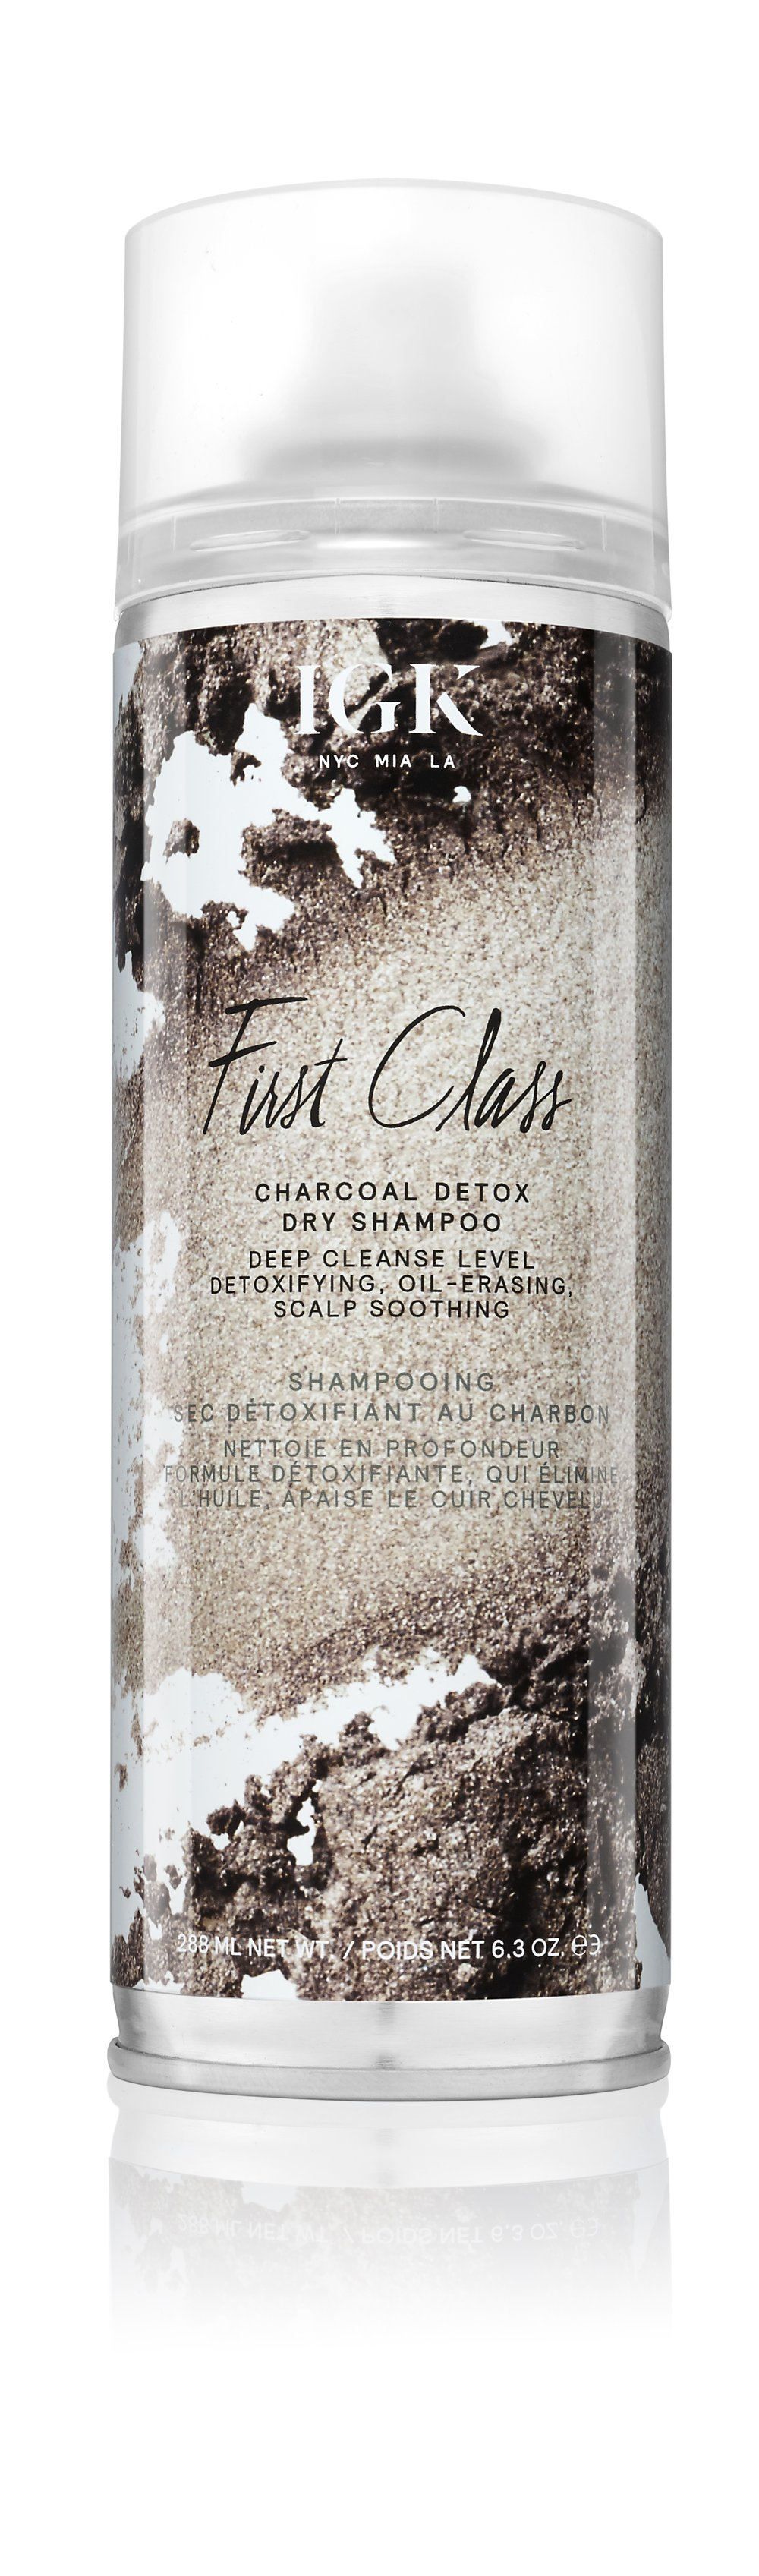 FIRST CLASS Charcoal Detox Dry Shampoo - Cap On.jpg